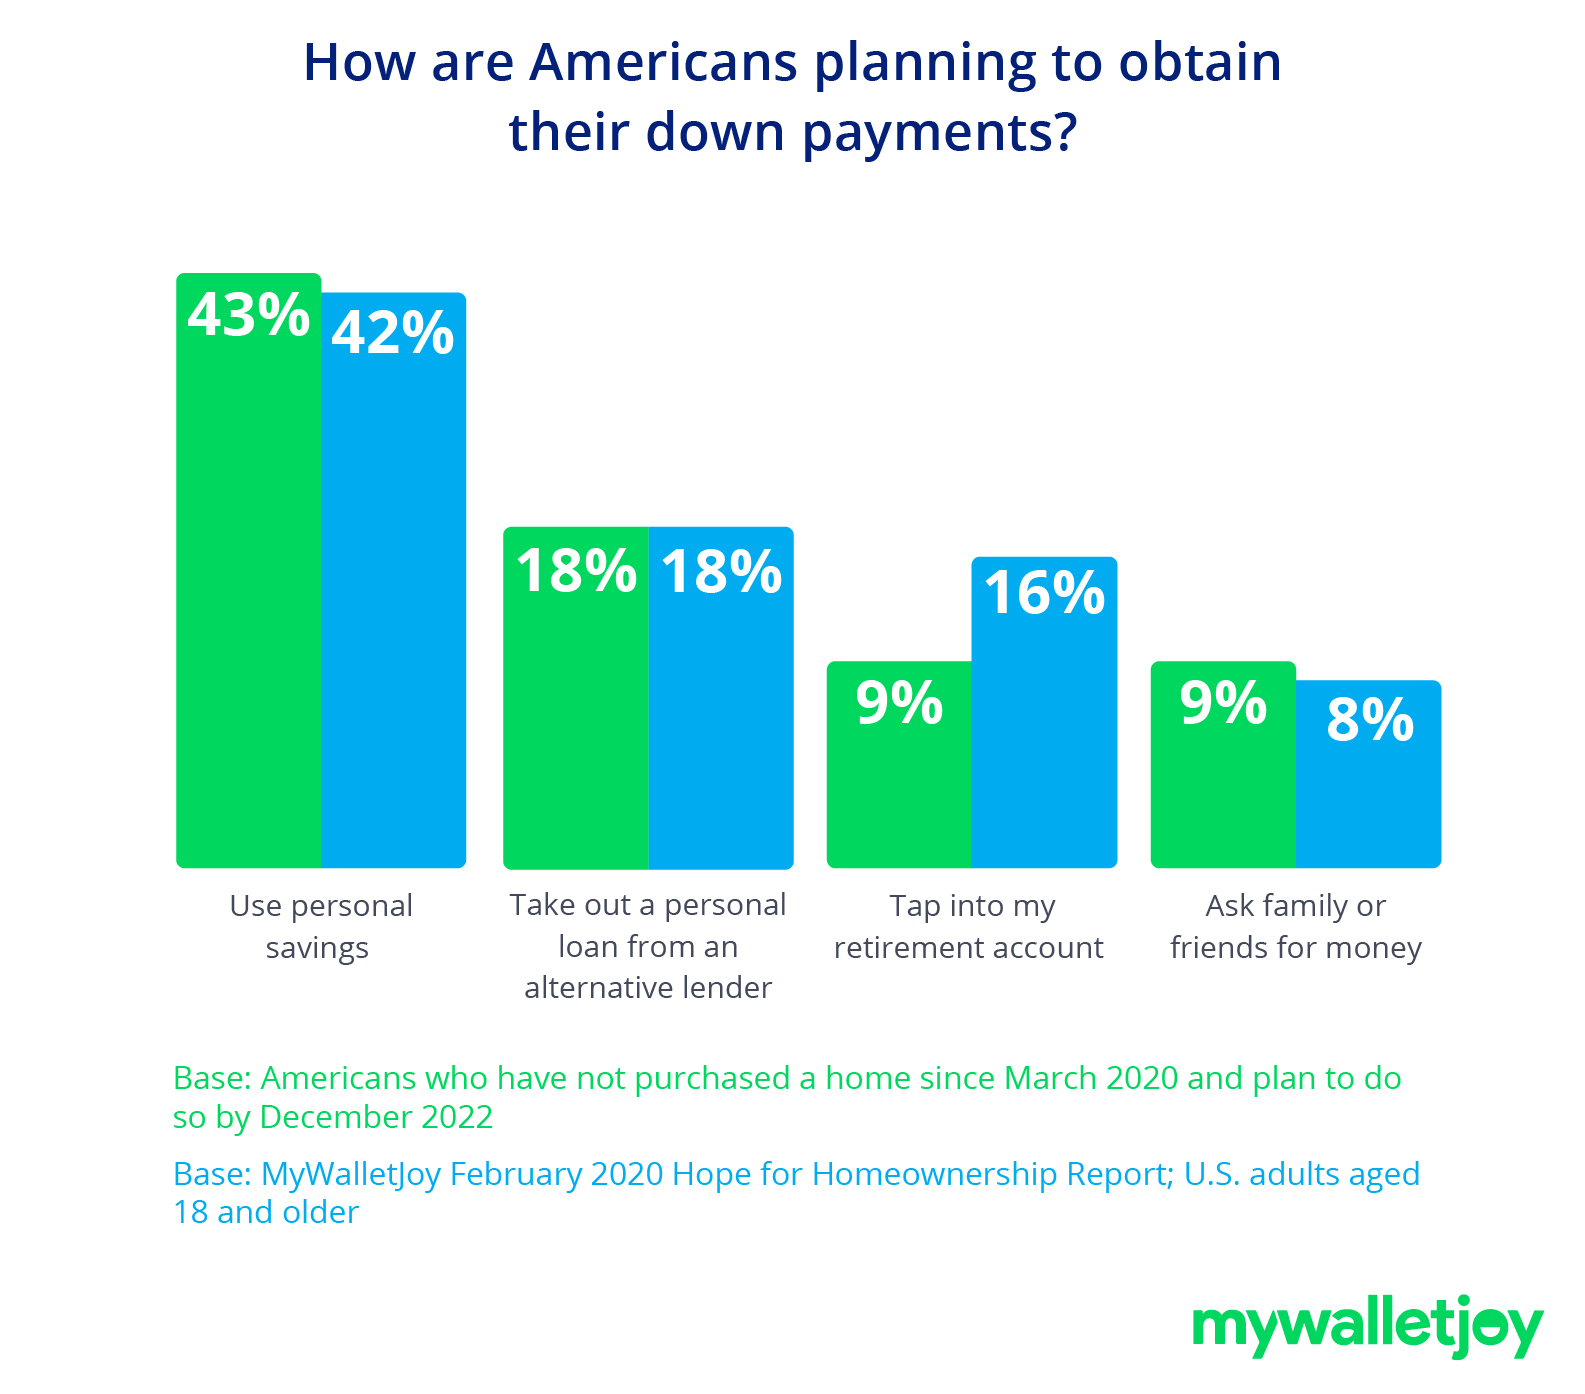 bar chart depicting how americans are planning to obtain their down payments